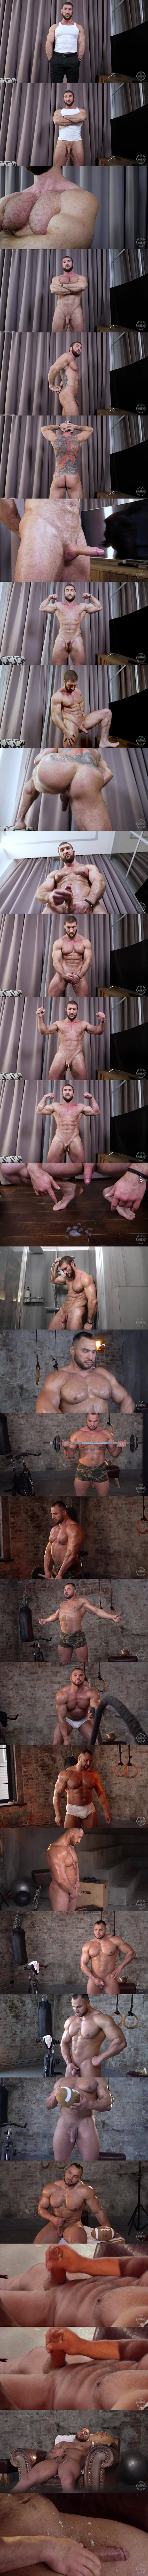 Theguysite - macho straight beefcake, Russian bodybuilders Max and Stas pose their naked muscular bodies and stroke their cocks until they shoot their white jizz 02